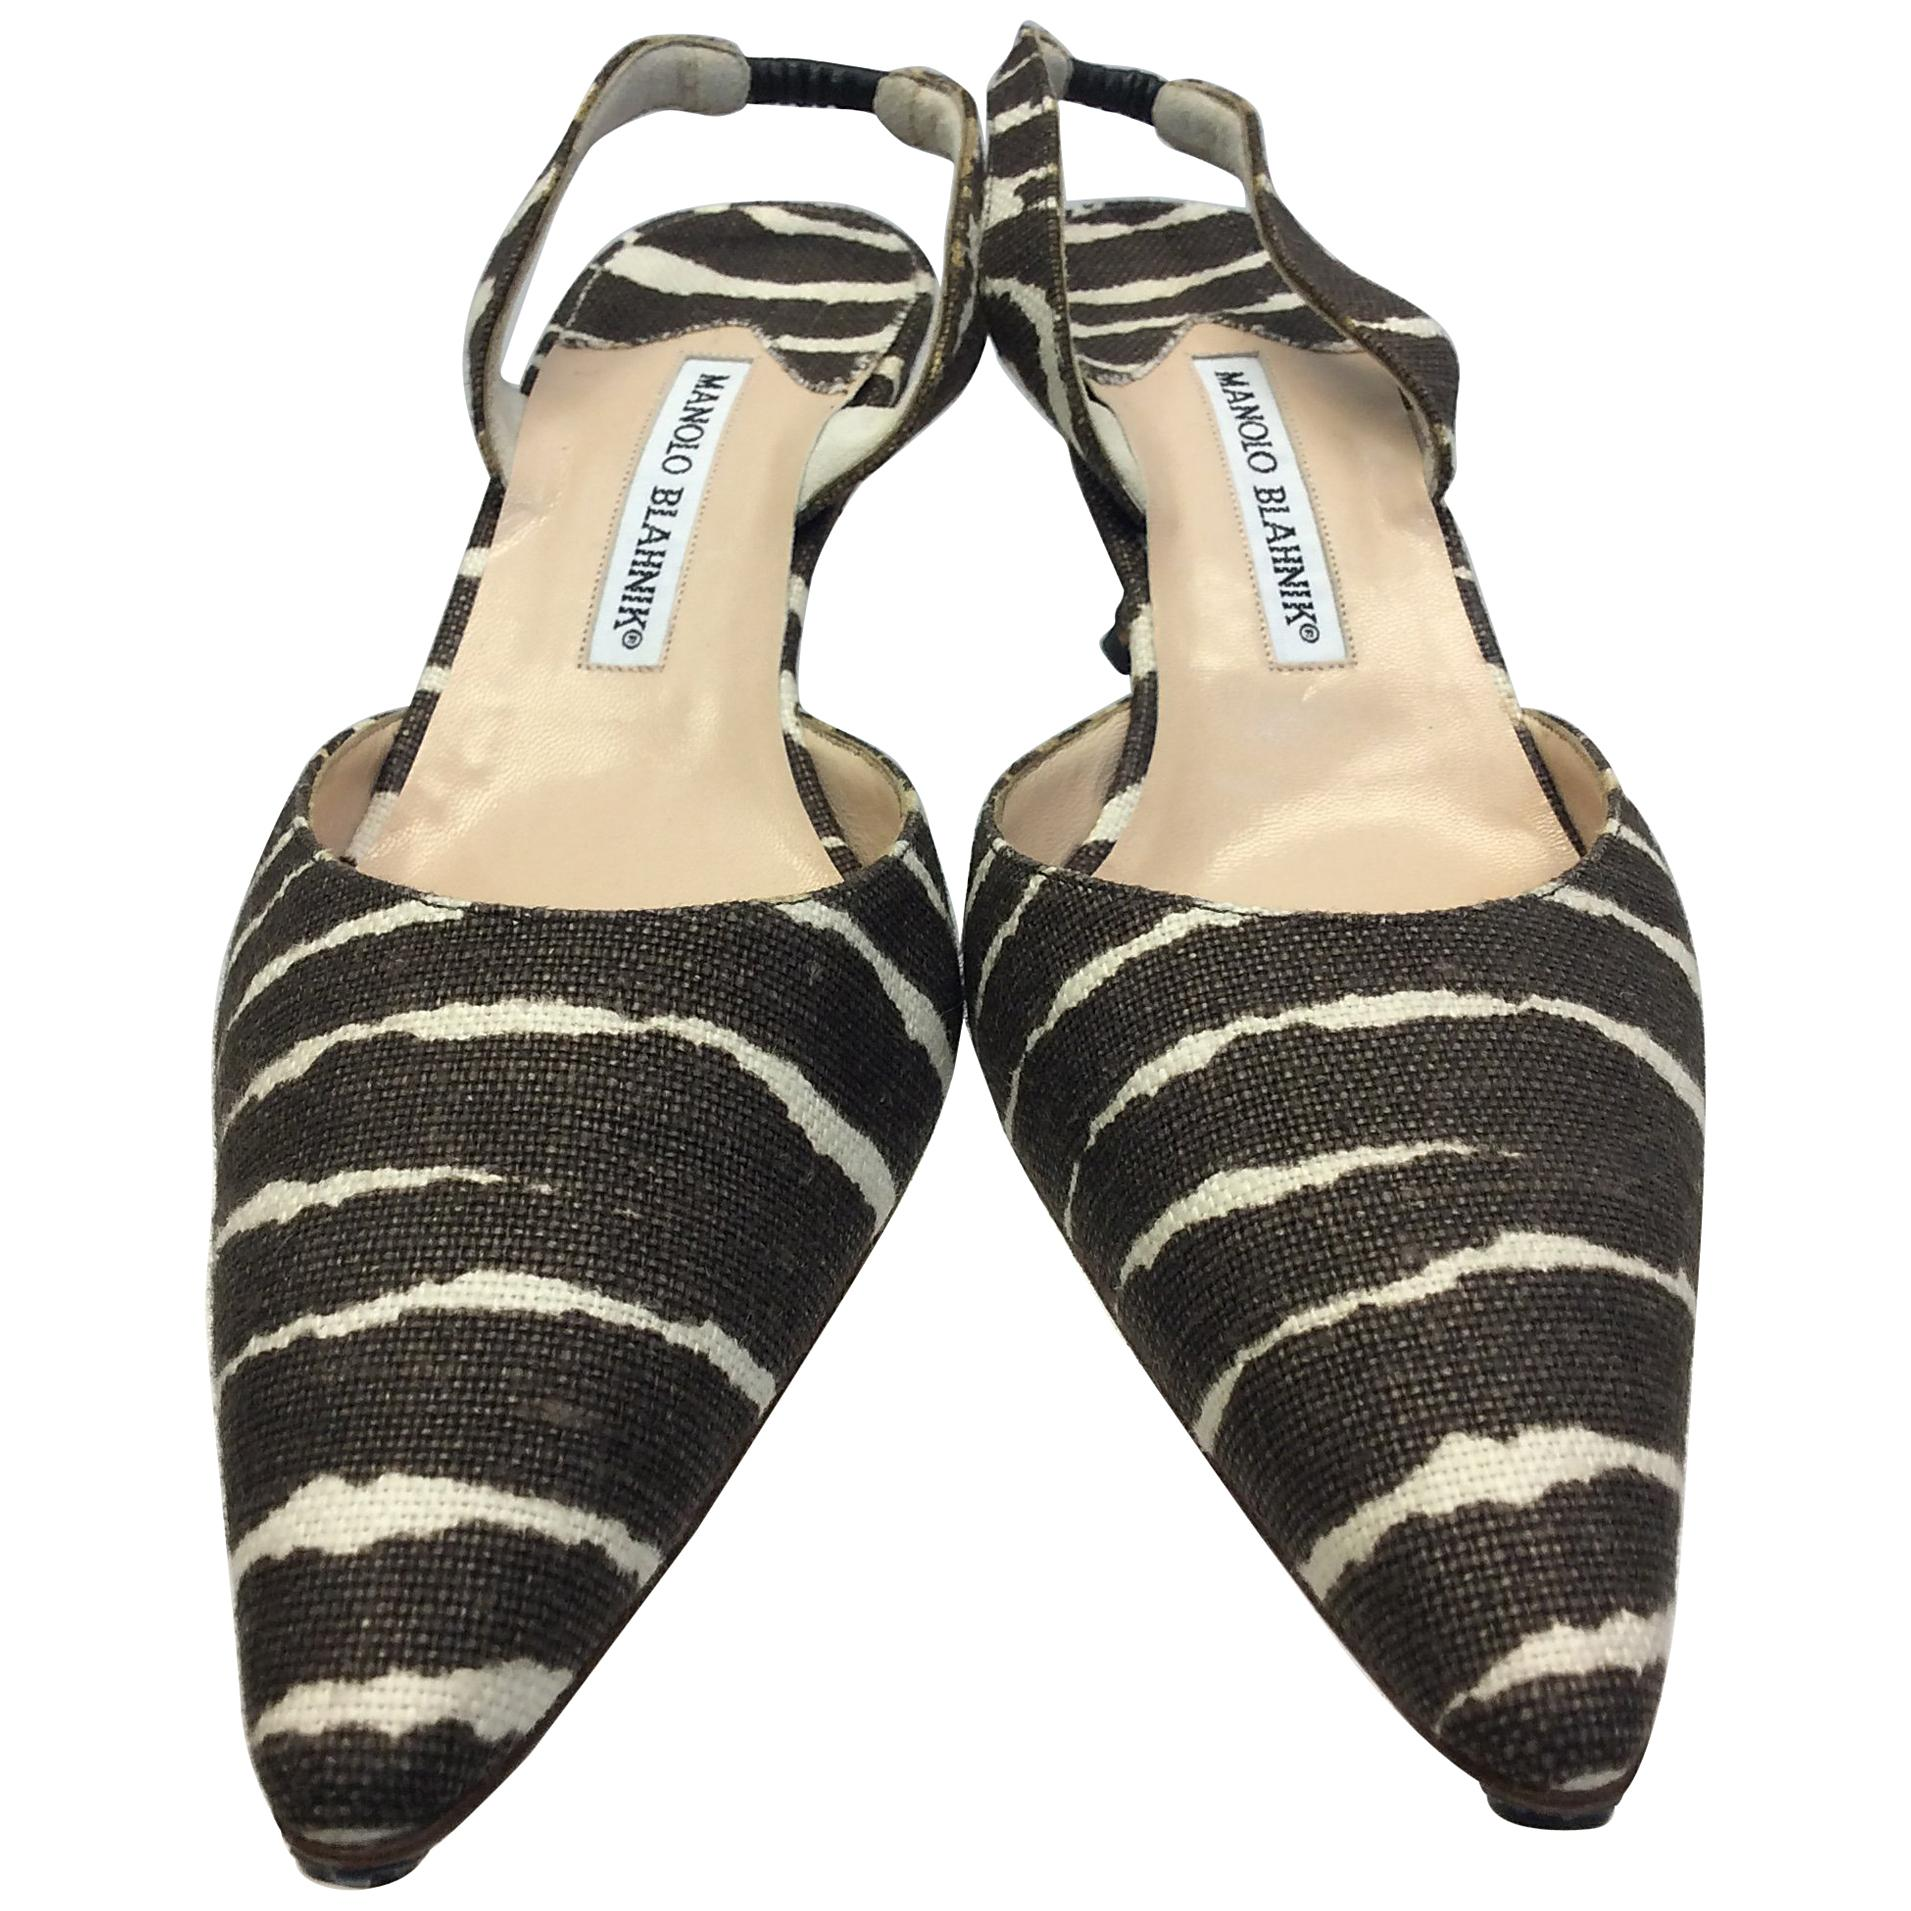 22bbc5b71327 Manolo Blahnik Brown and White Stripe Slingback Heels For Sale at 1stdibs